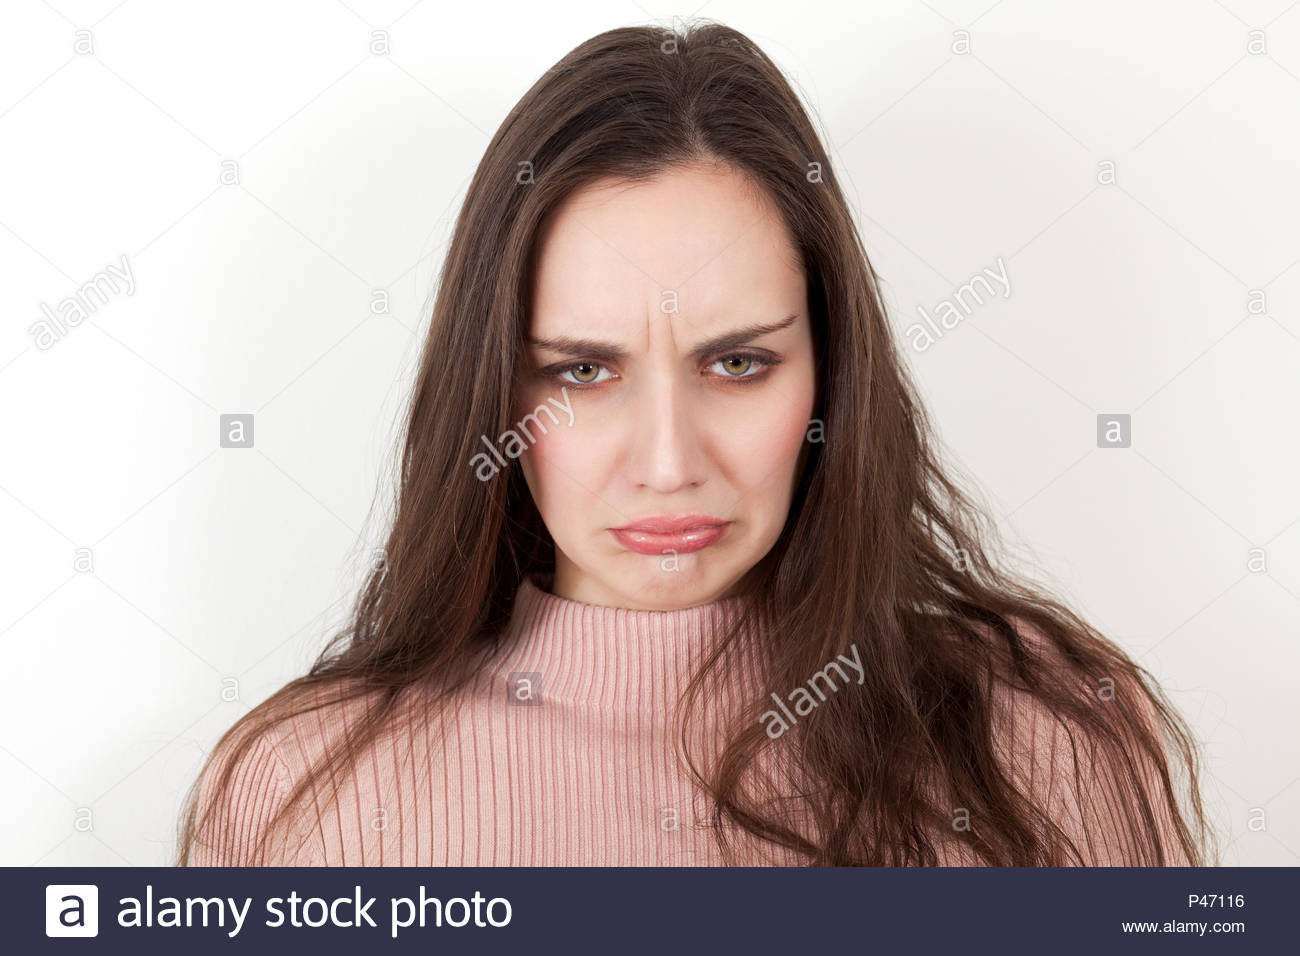 Scowling woman with upset face expression - Stock Image